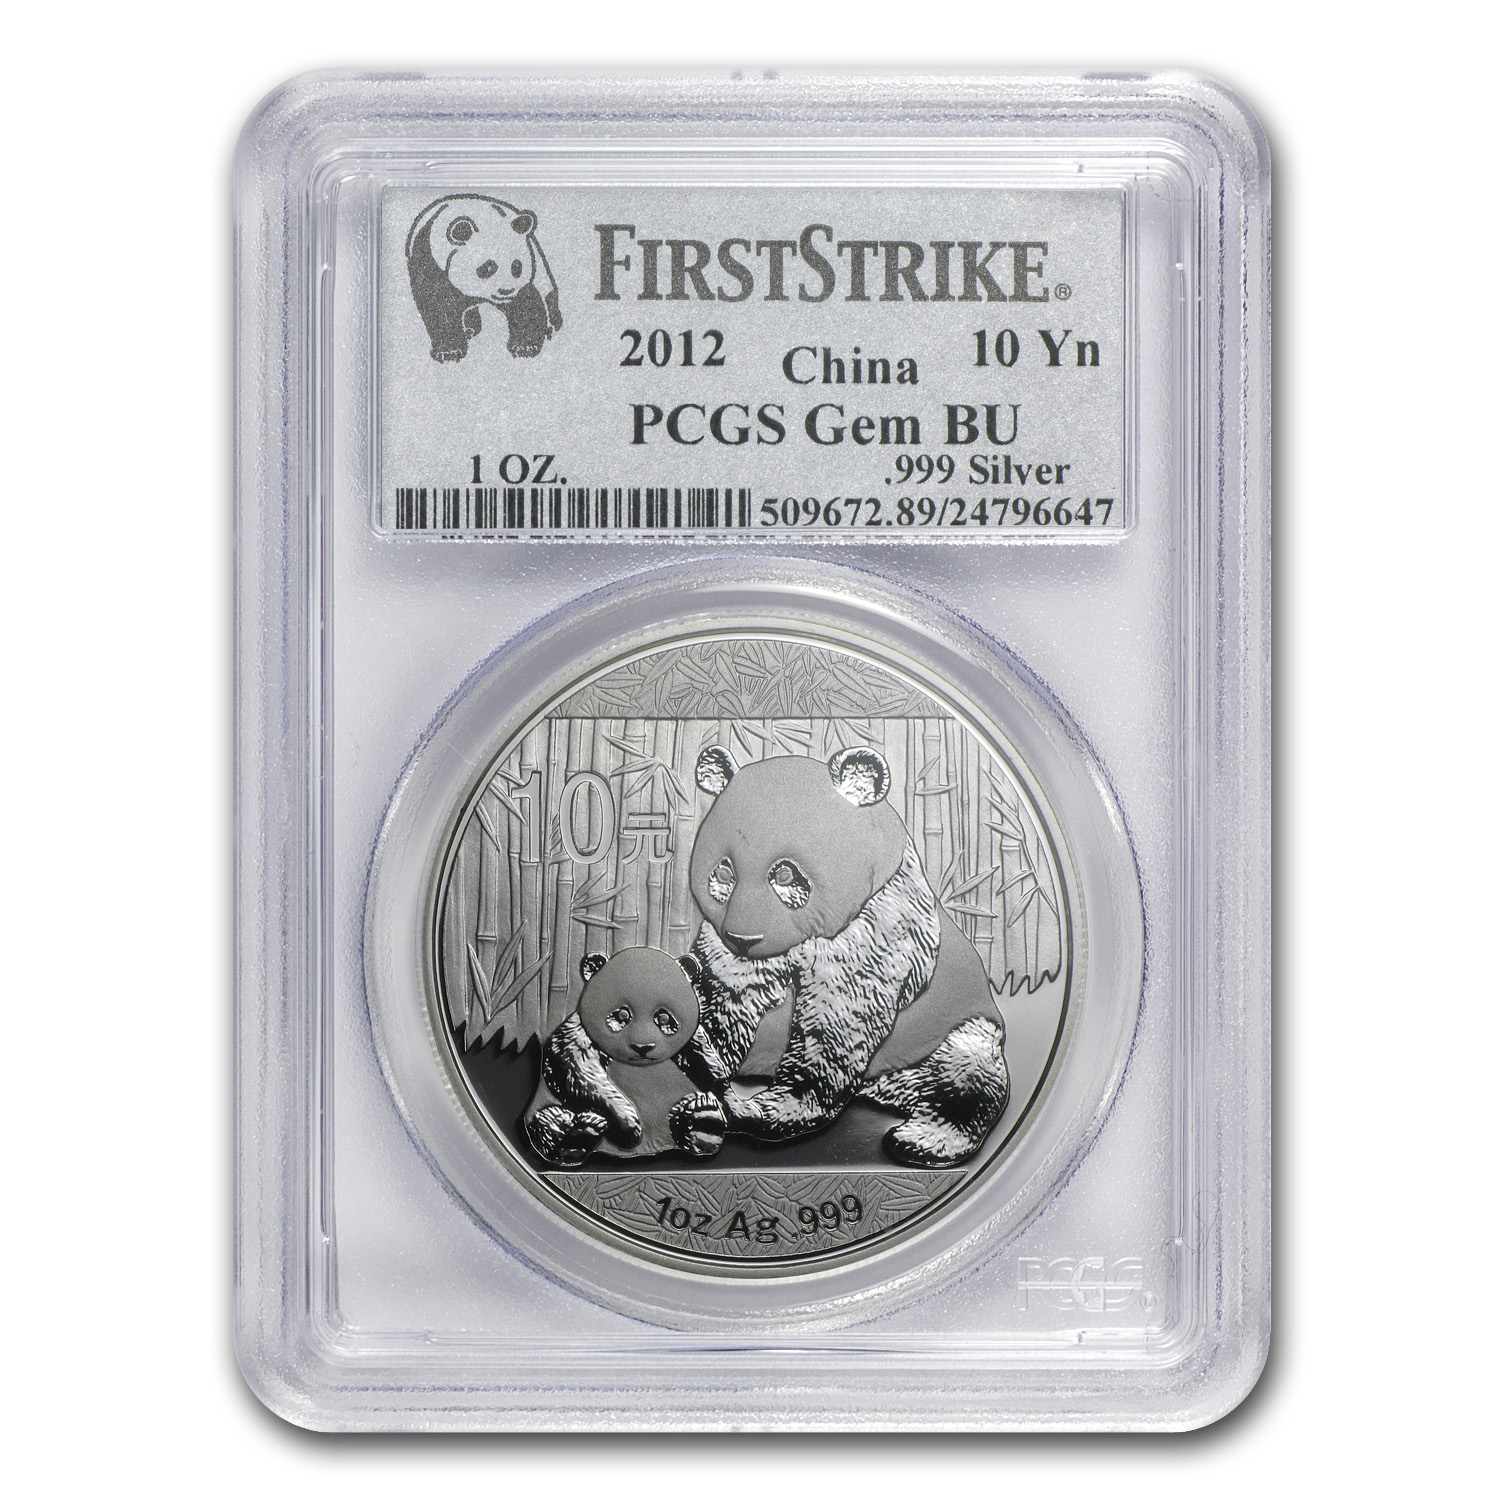 2012 1 oz Silver Chinese Panda Gem BU PCGS (First Strike)